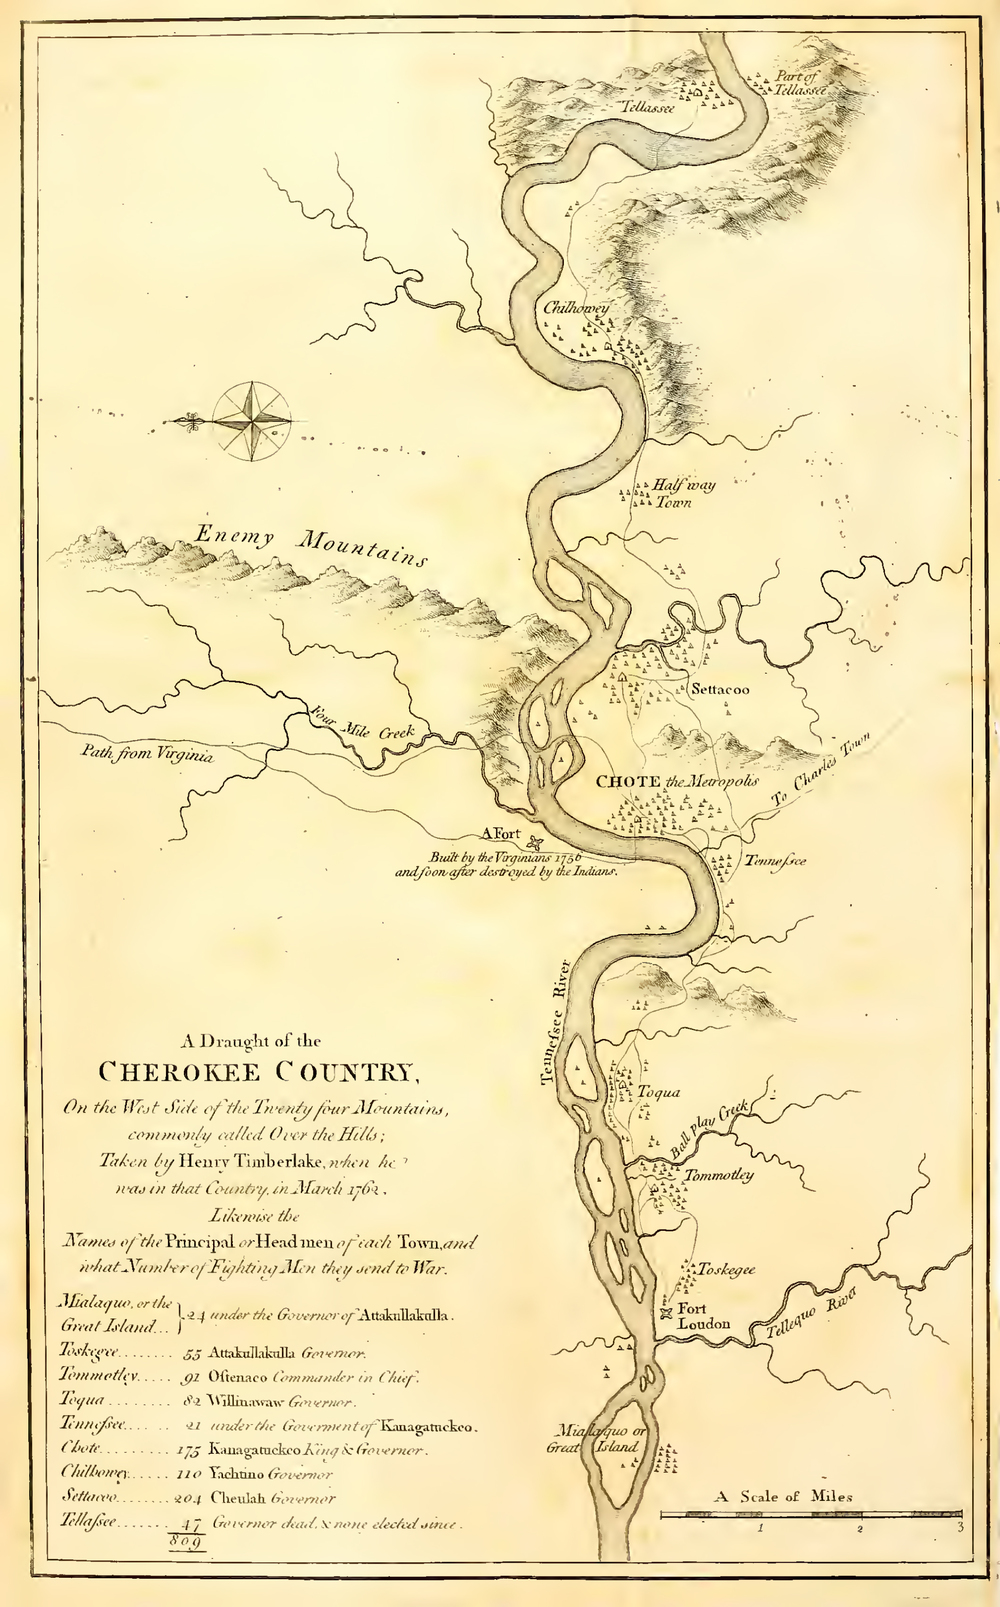 Map of the Cherokee country, 1765 © University of Pittsburgh Library